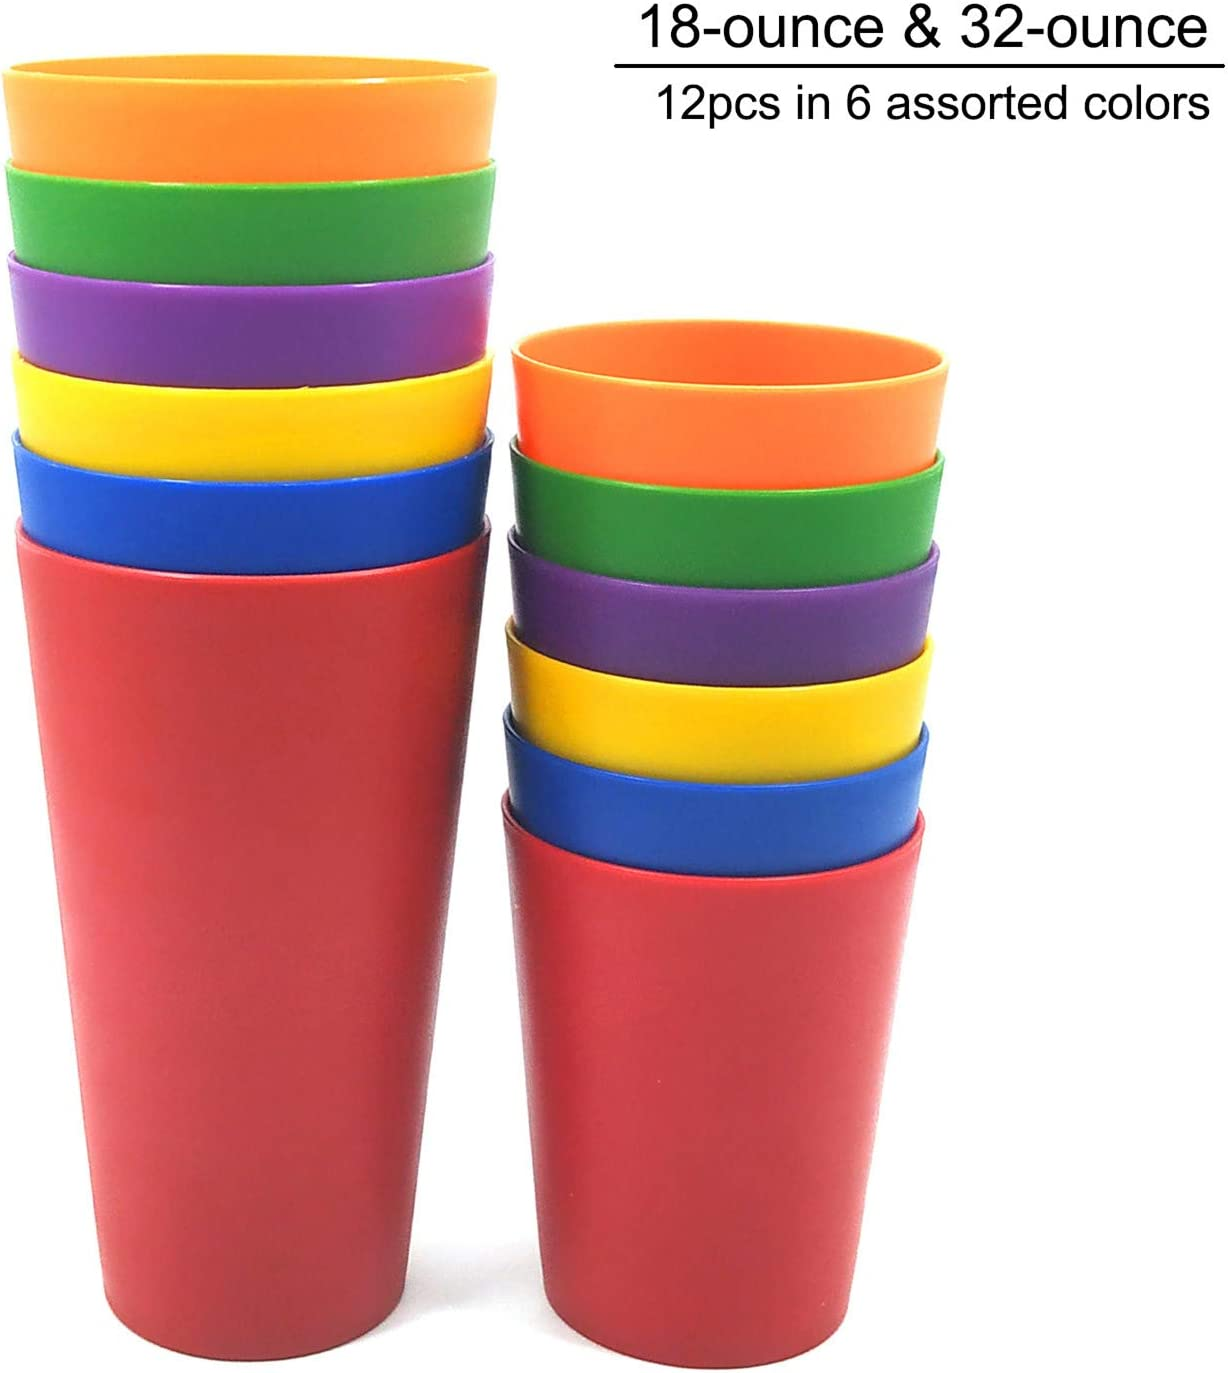 32-ounce and 18-ounce Plastic Tumblers Drinking Glasses, Set of 12 Multicolor - Unbreakable, Dishwasher Safe, BPA Free